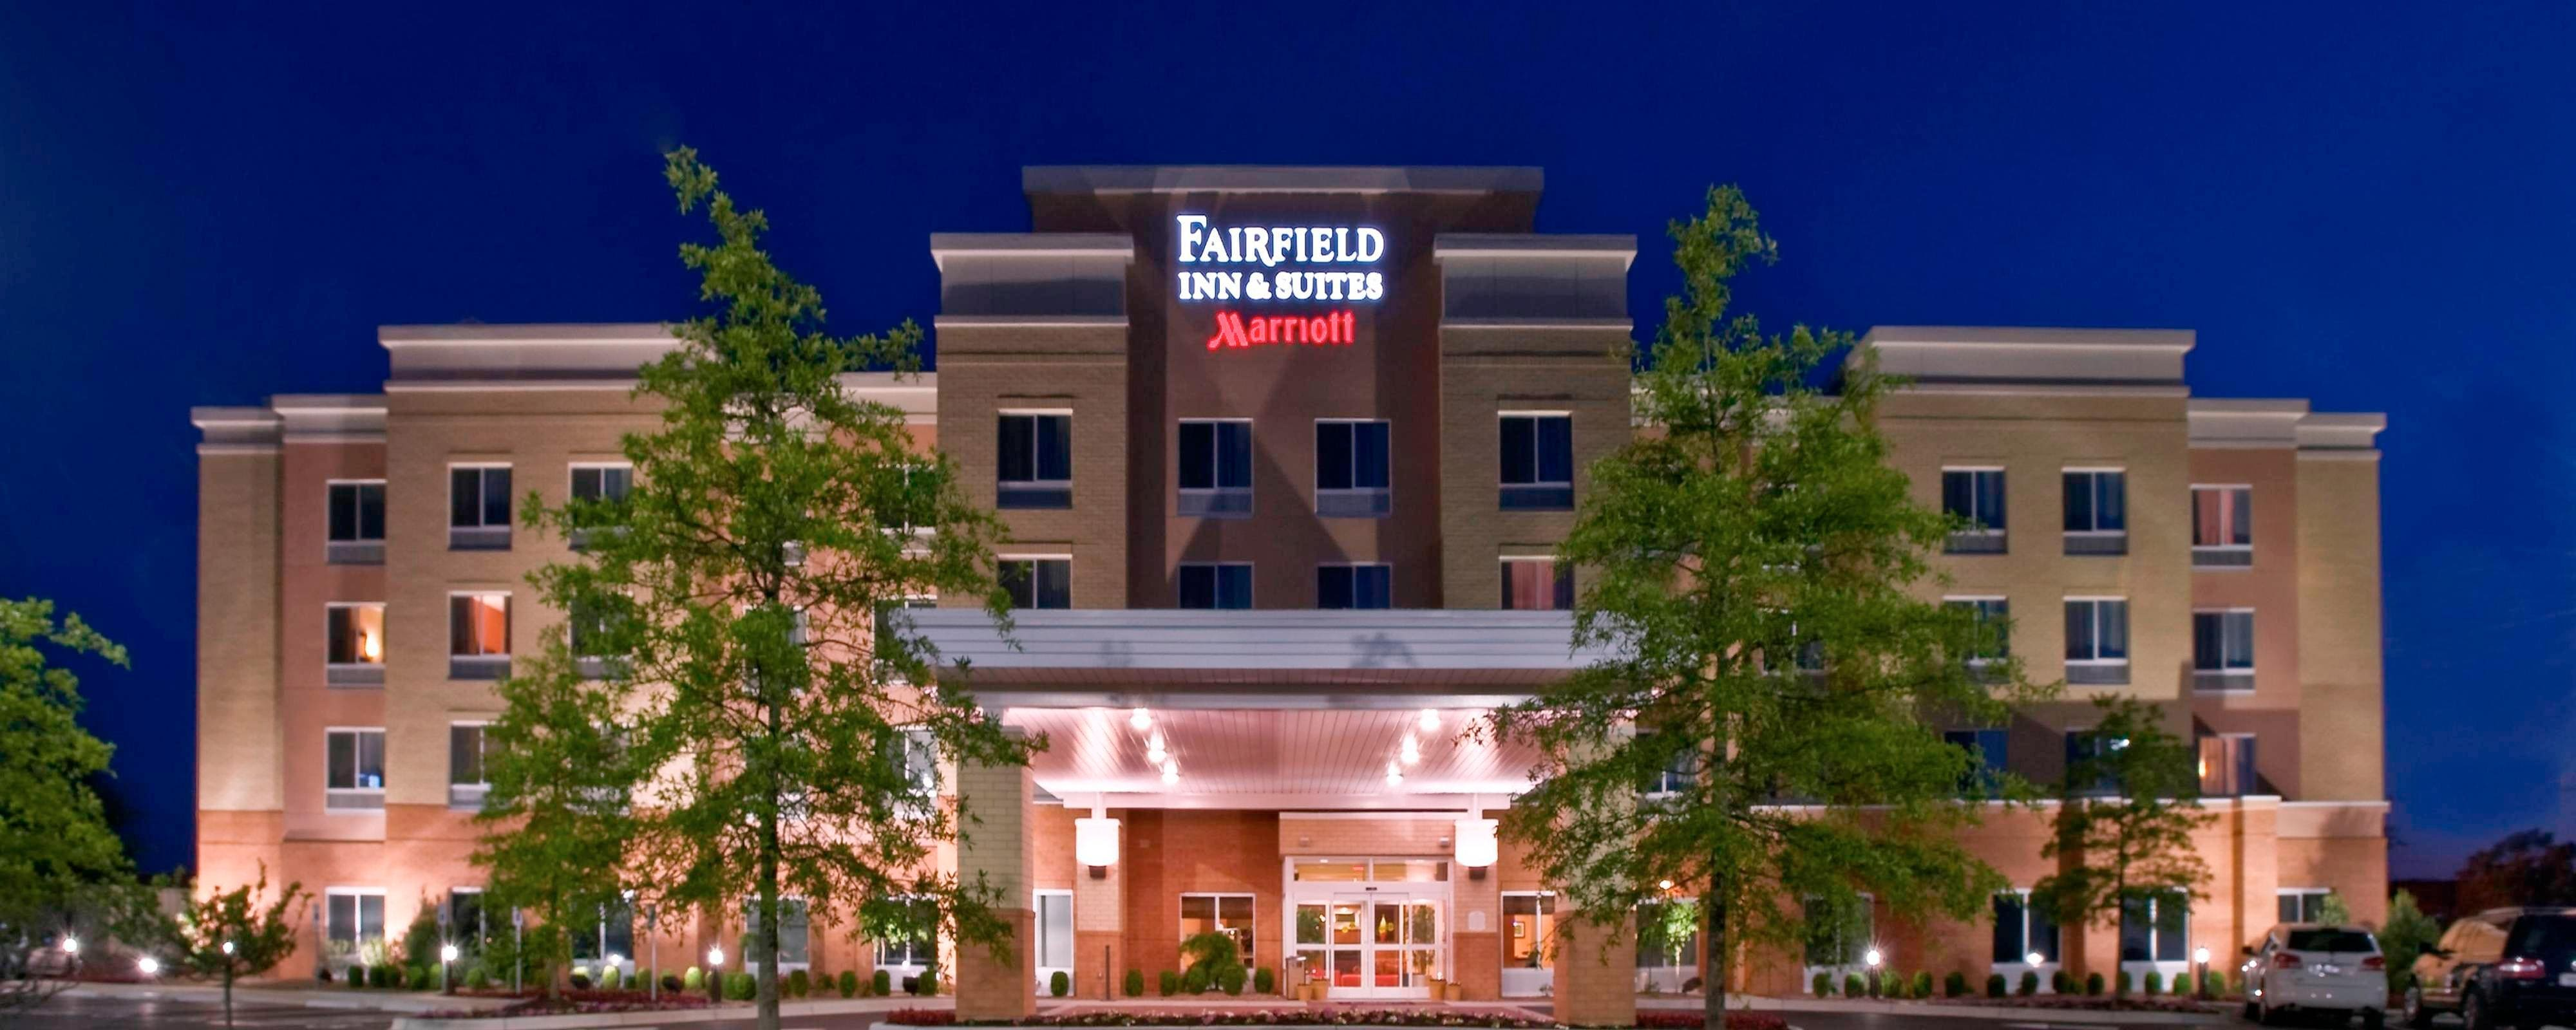 Exterior del Fairfield Inn & Suites Louisville